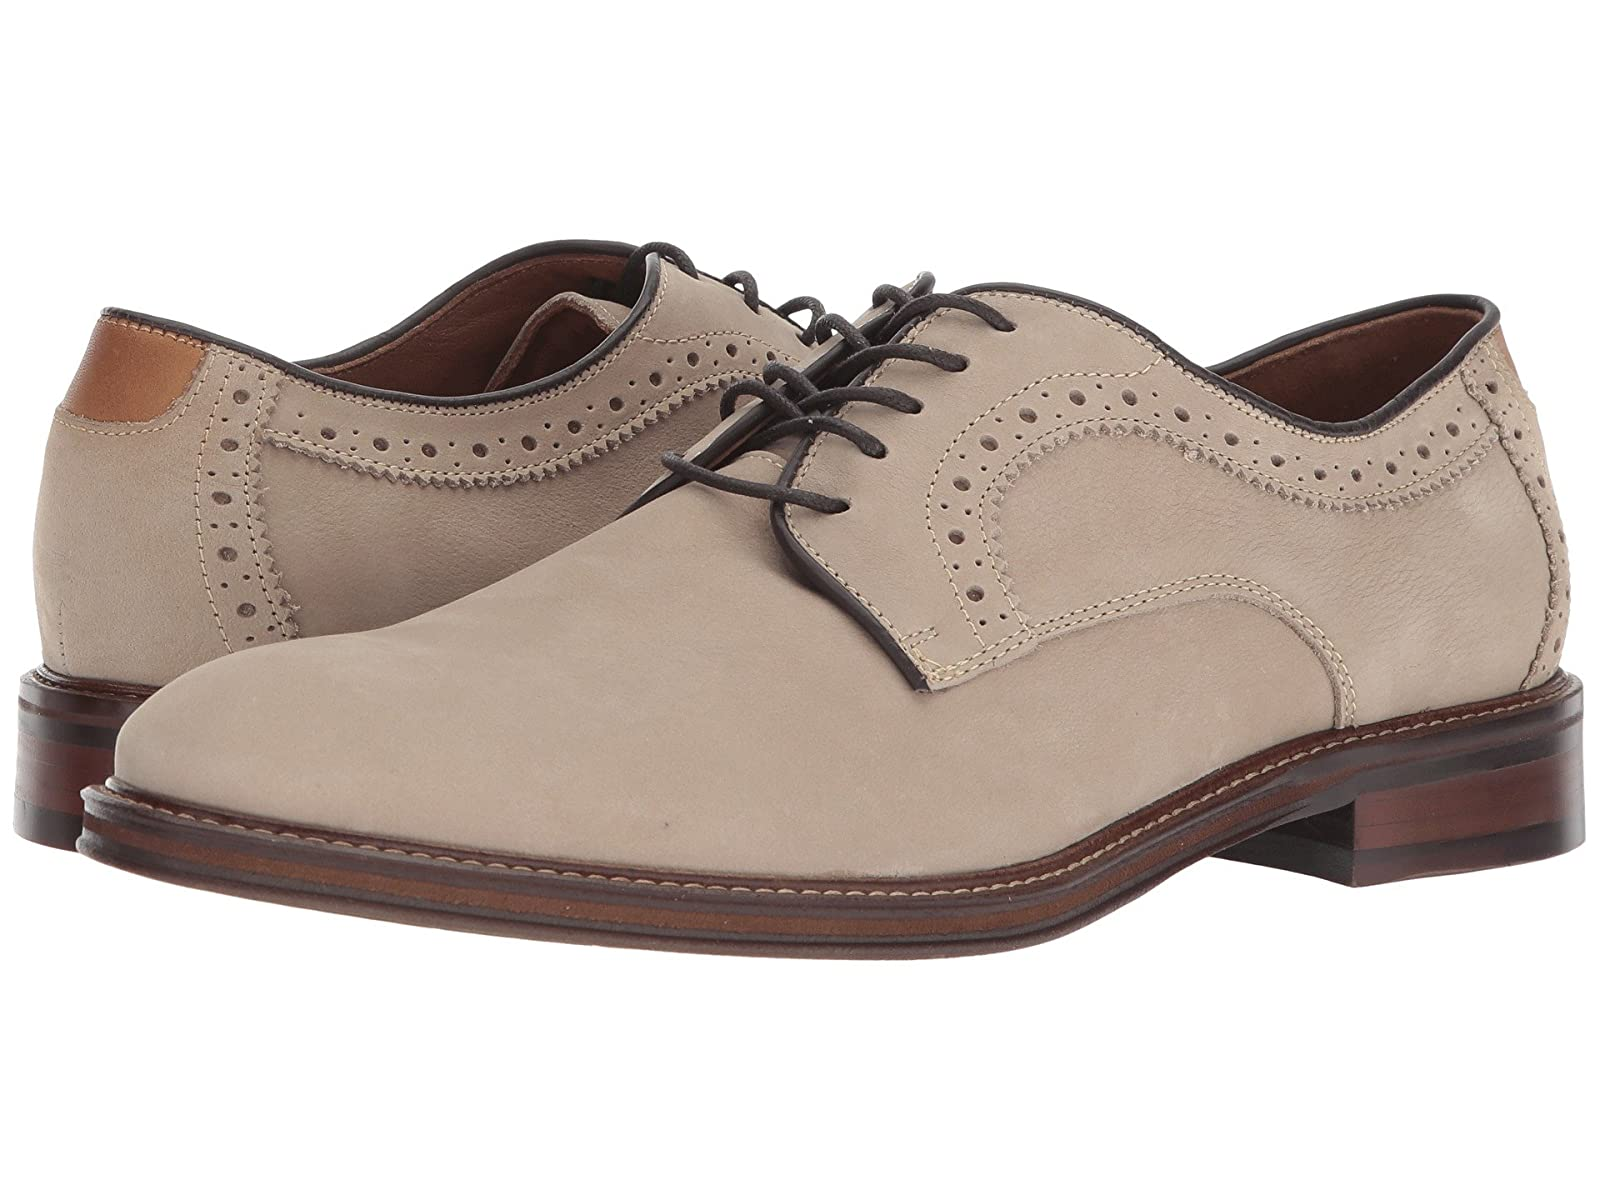 Johnston & Murphy Warner Casual Dress Plain Toe OxfordAtmospheric grades have affordable shoes